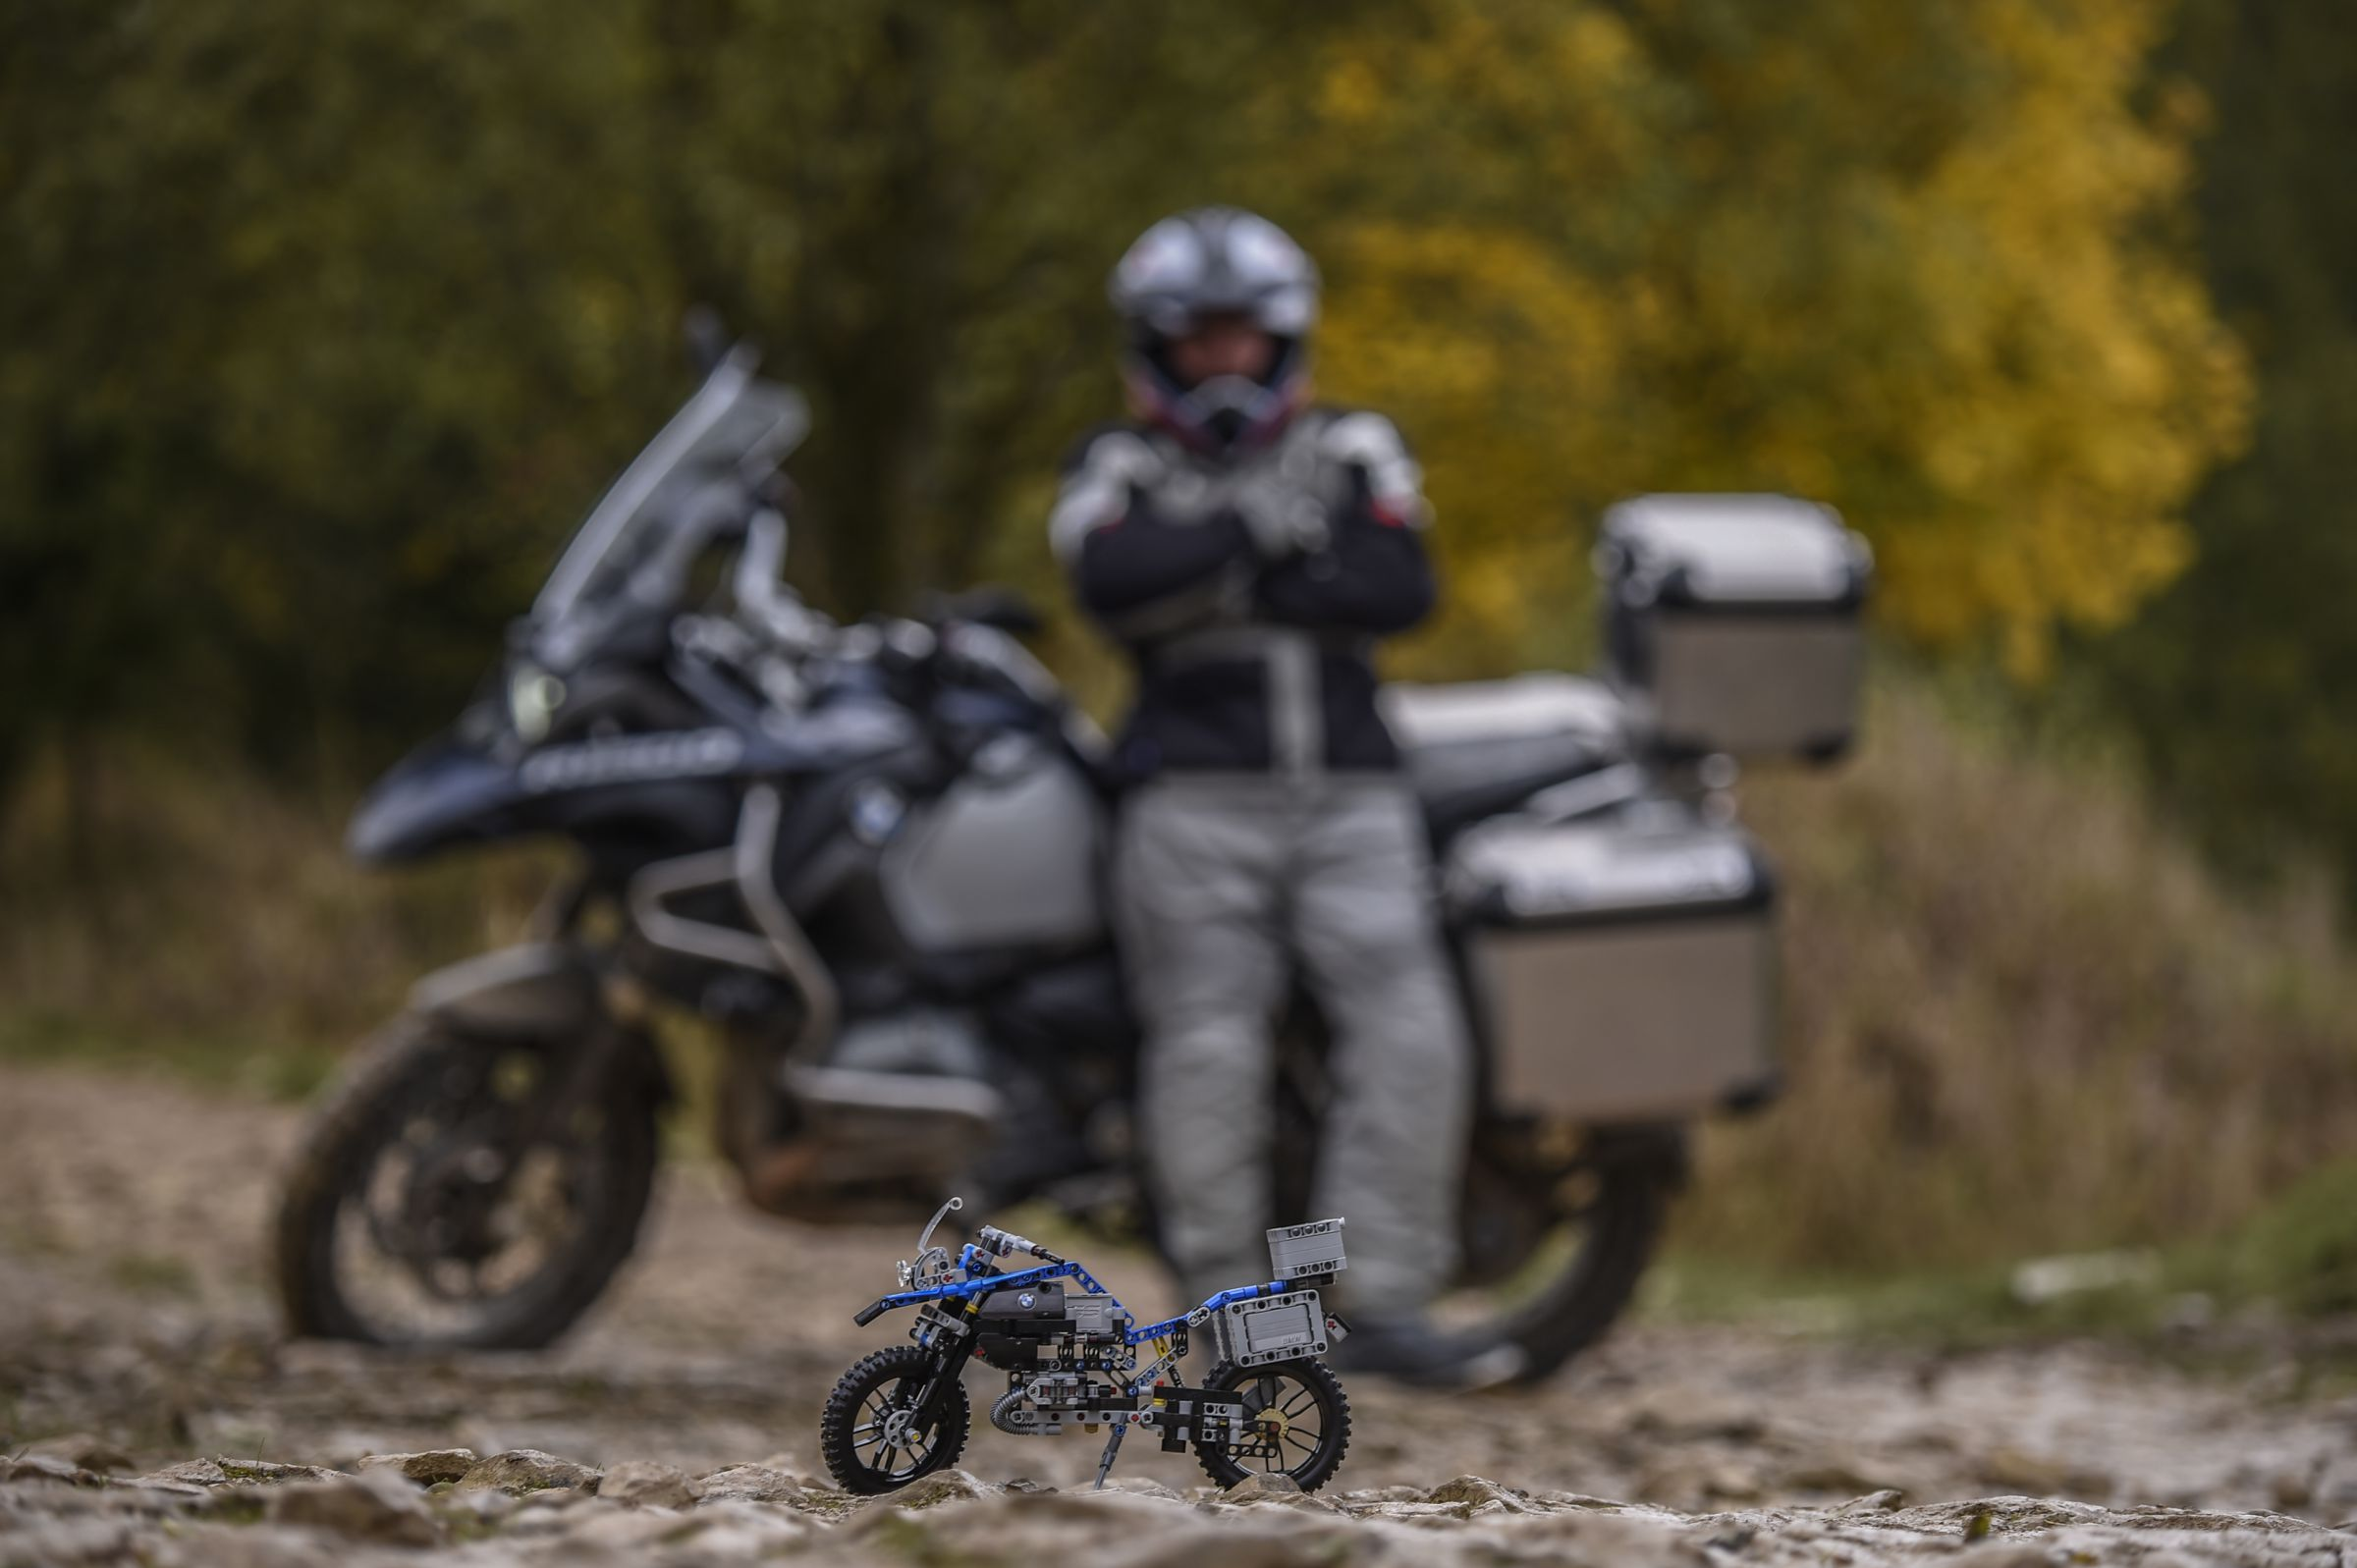 LEGO Technic 42063 BMW R 1200 GS Adventure LEGO_42063_bmw-R-1200-GS-Adventure_img9.jpg